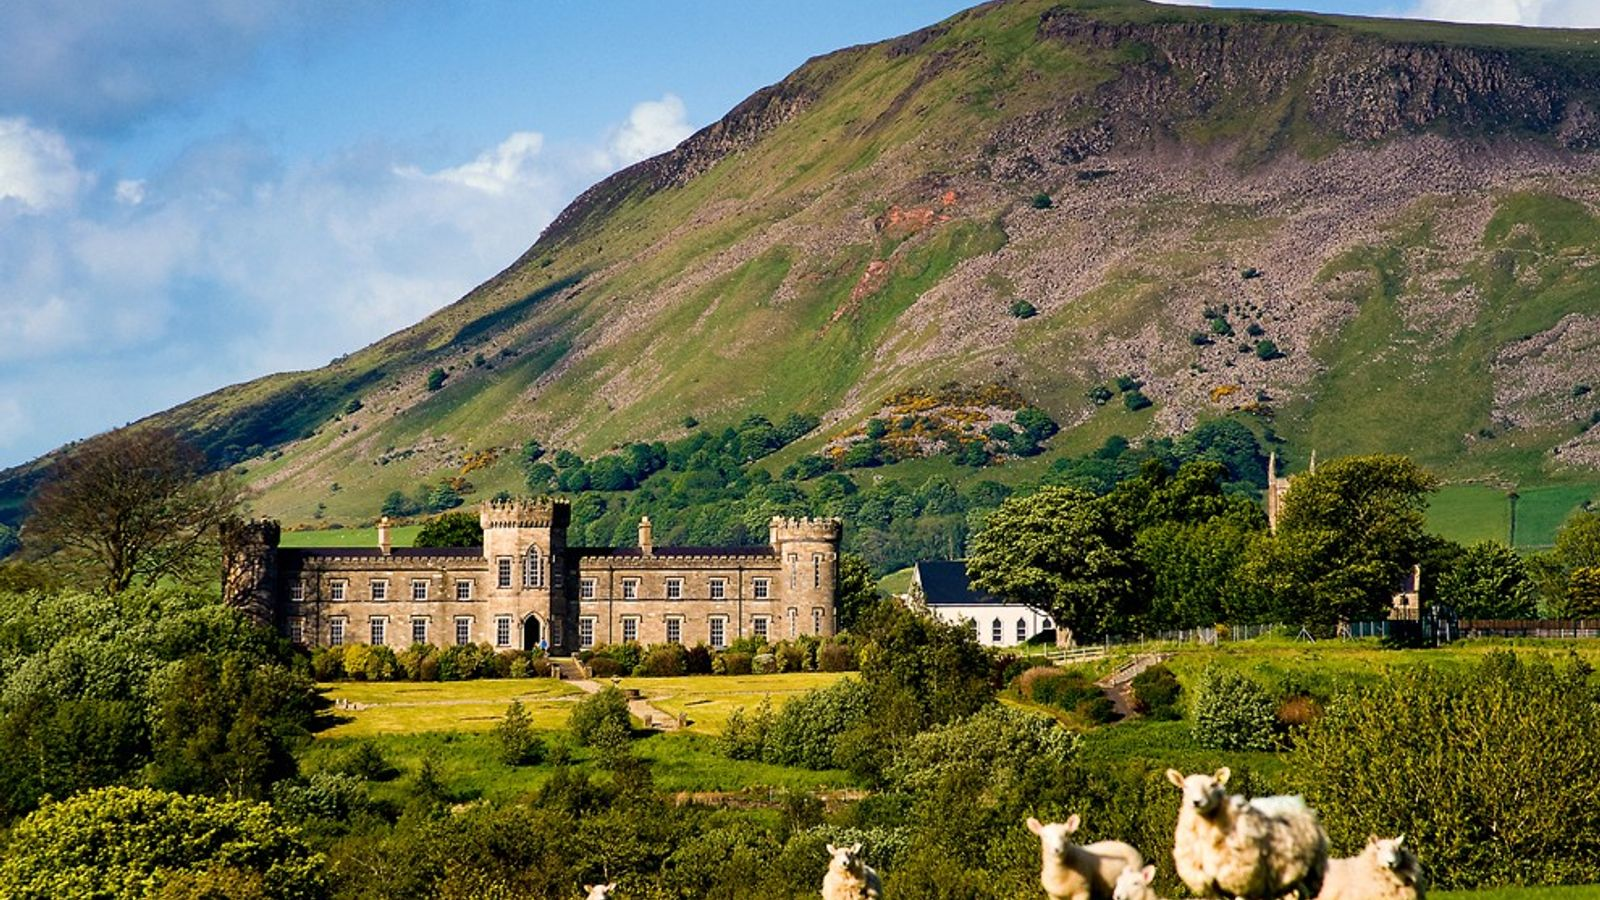 Dungiven Castle, County Derry, Northern Ireland